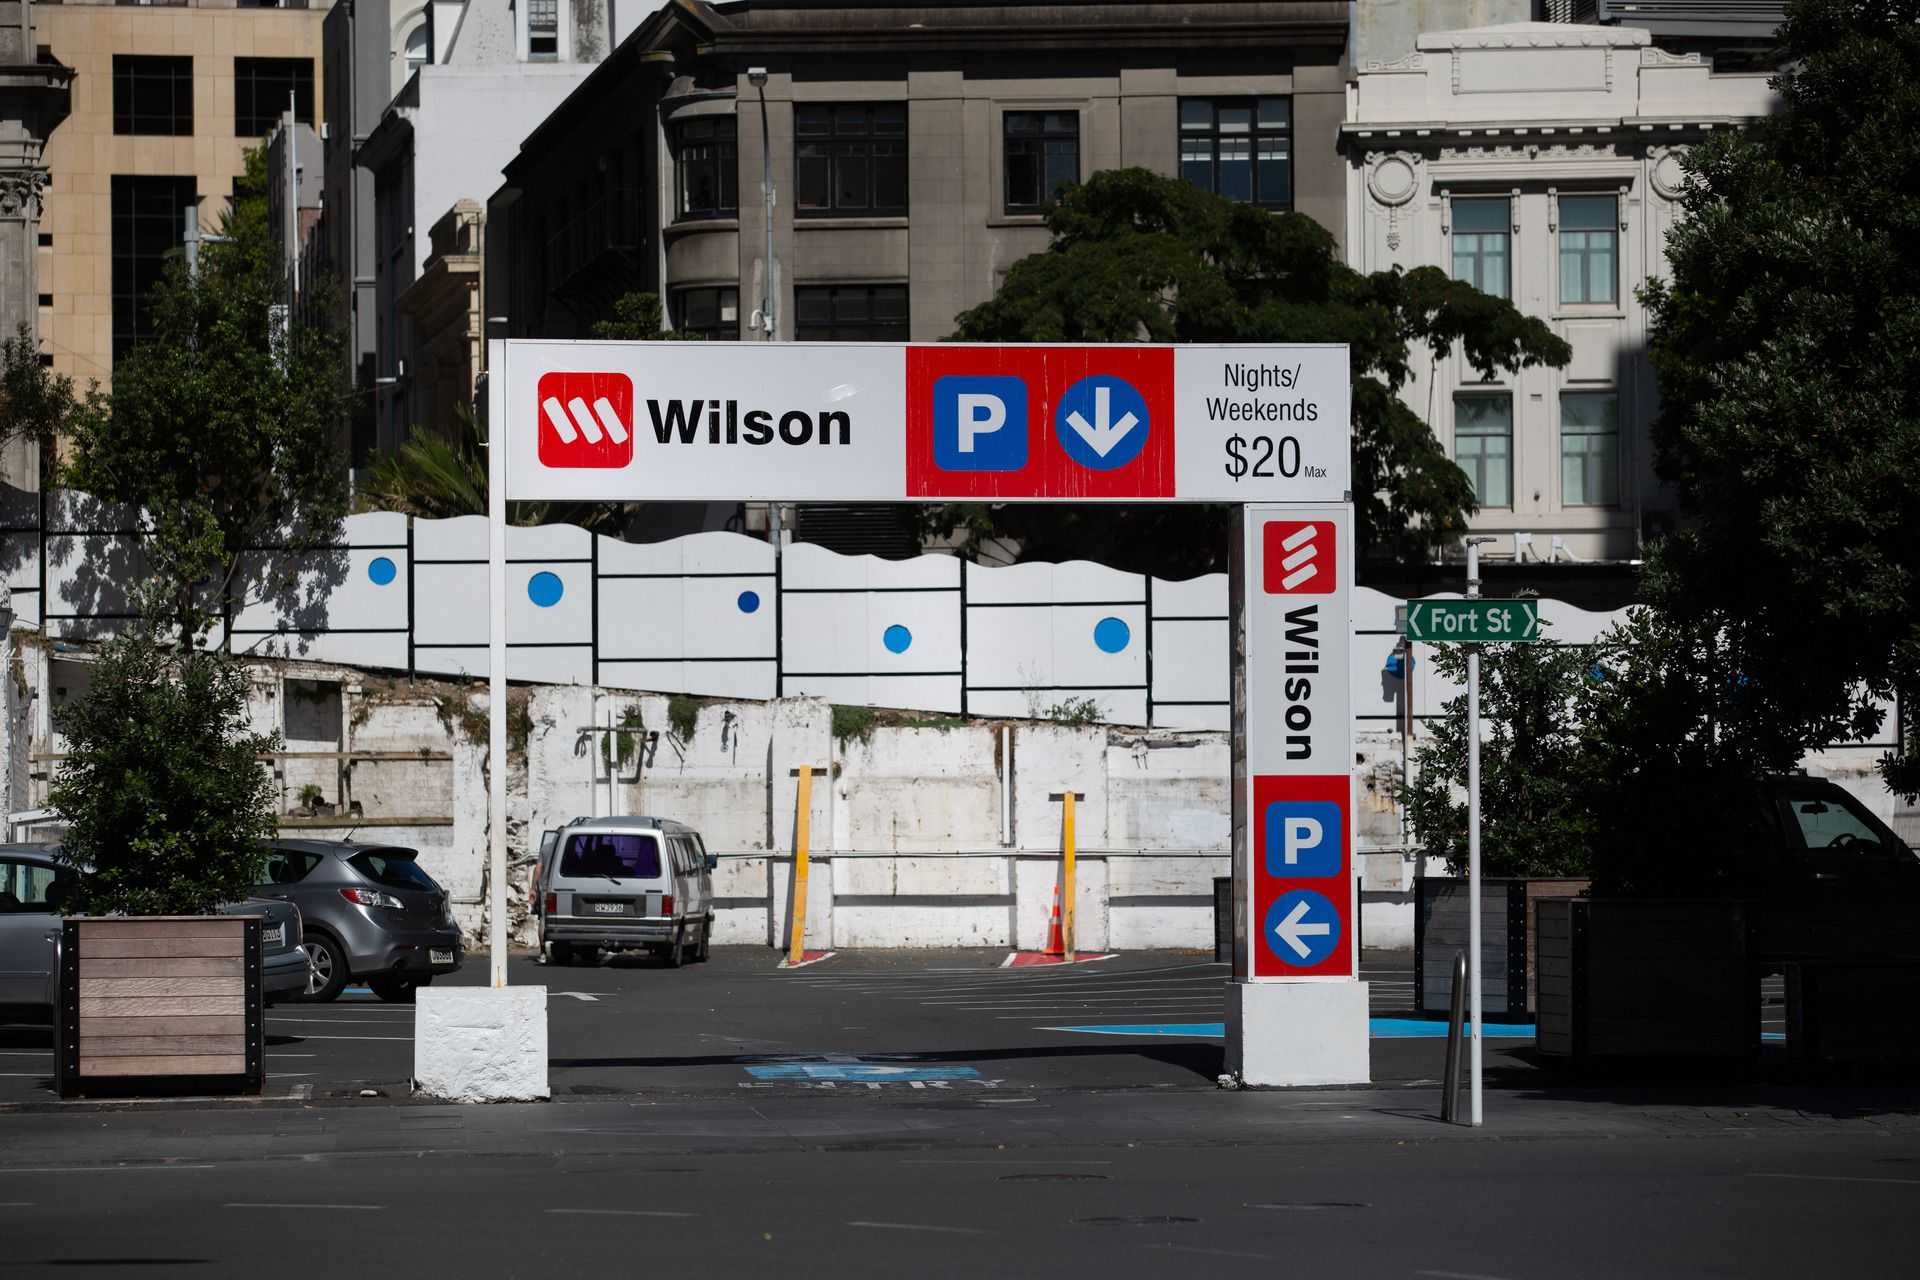 Wilson Parking Announces Free Parking On Weekends In An Attempt To Help Economy Nz Herald